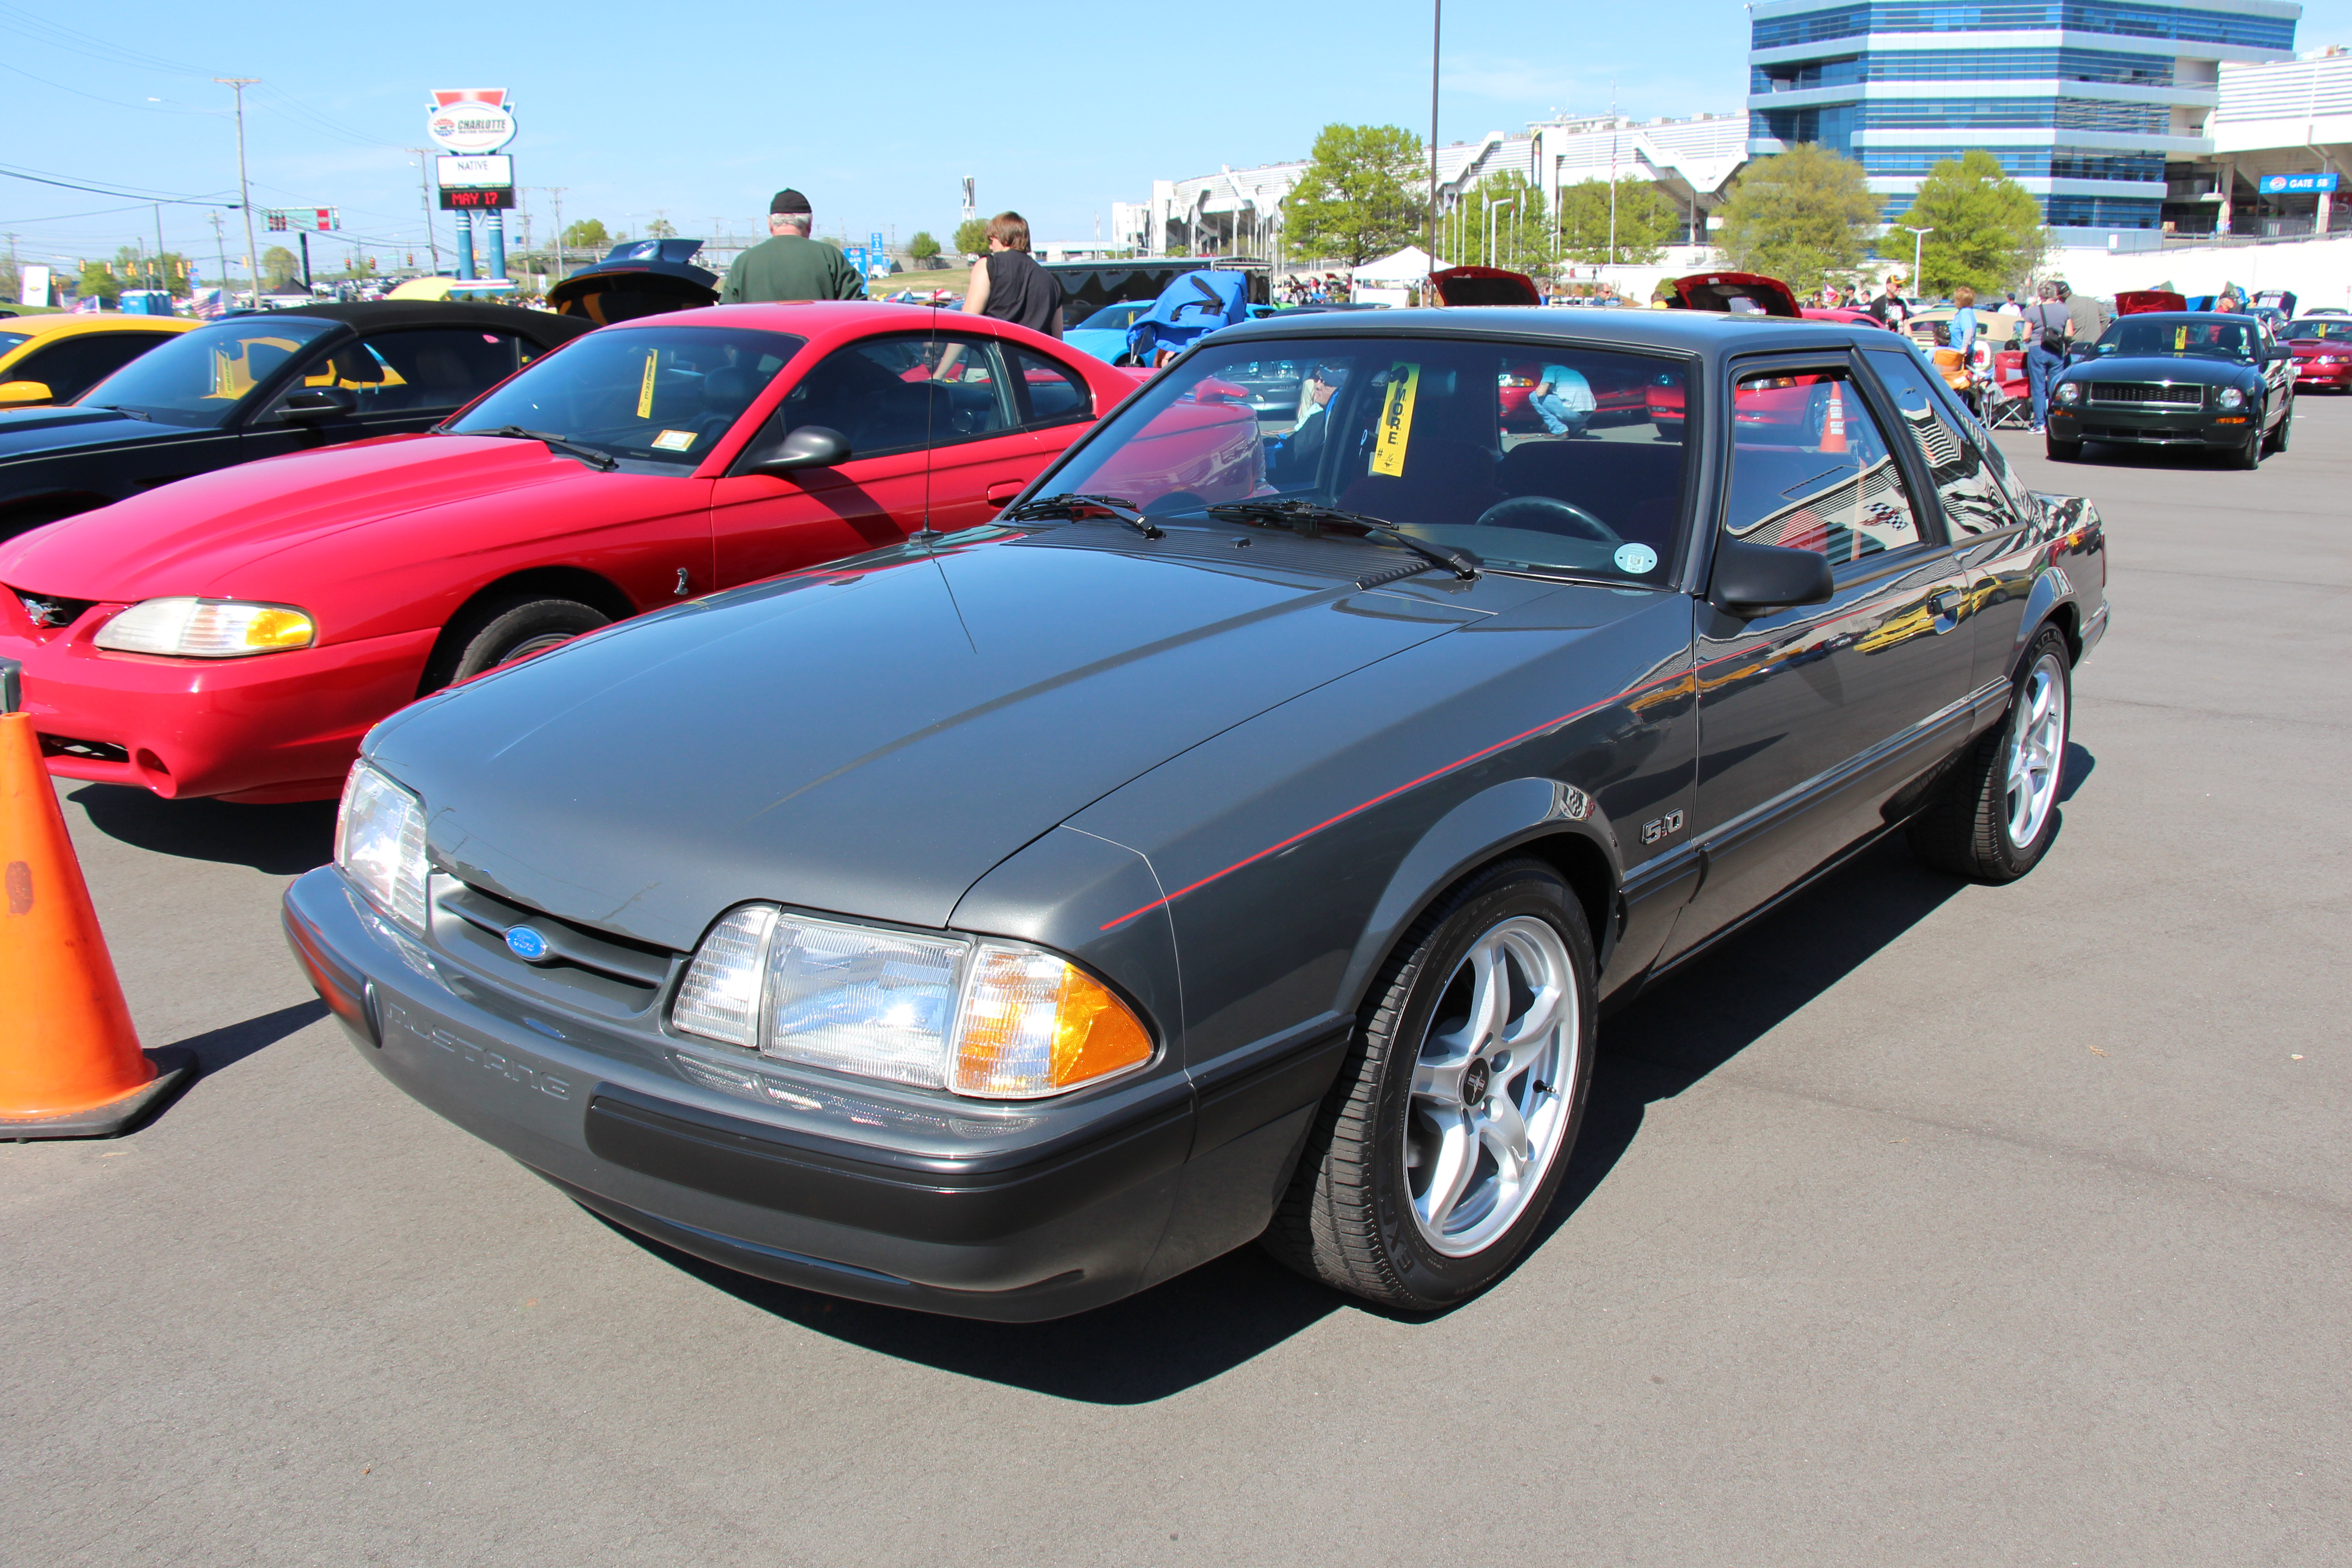 File:1989 Ford Mustang LX Coupe (14402804664).jpg ...